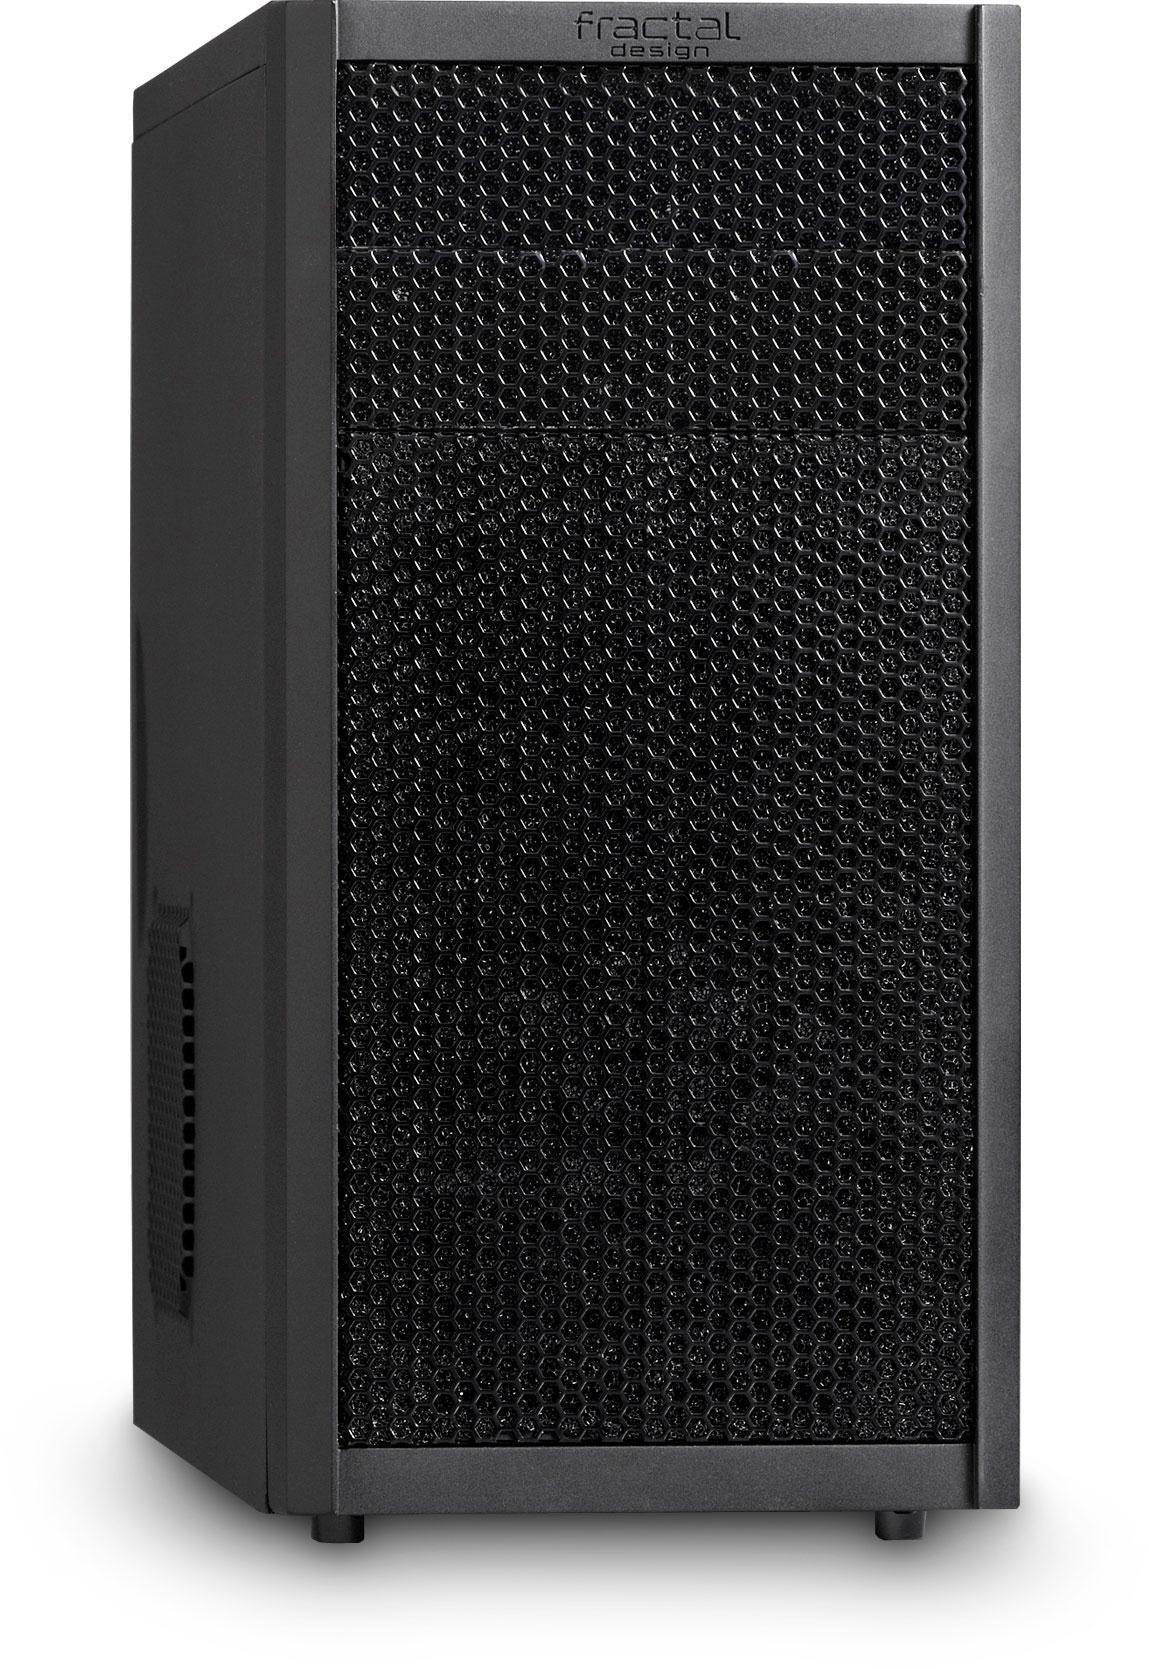 Fractal Design Core 1000 Midi Tower Case